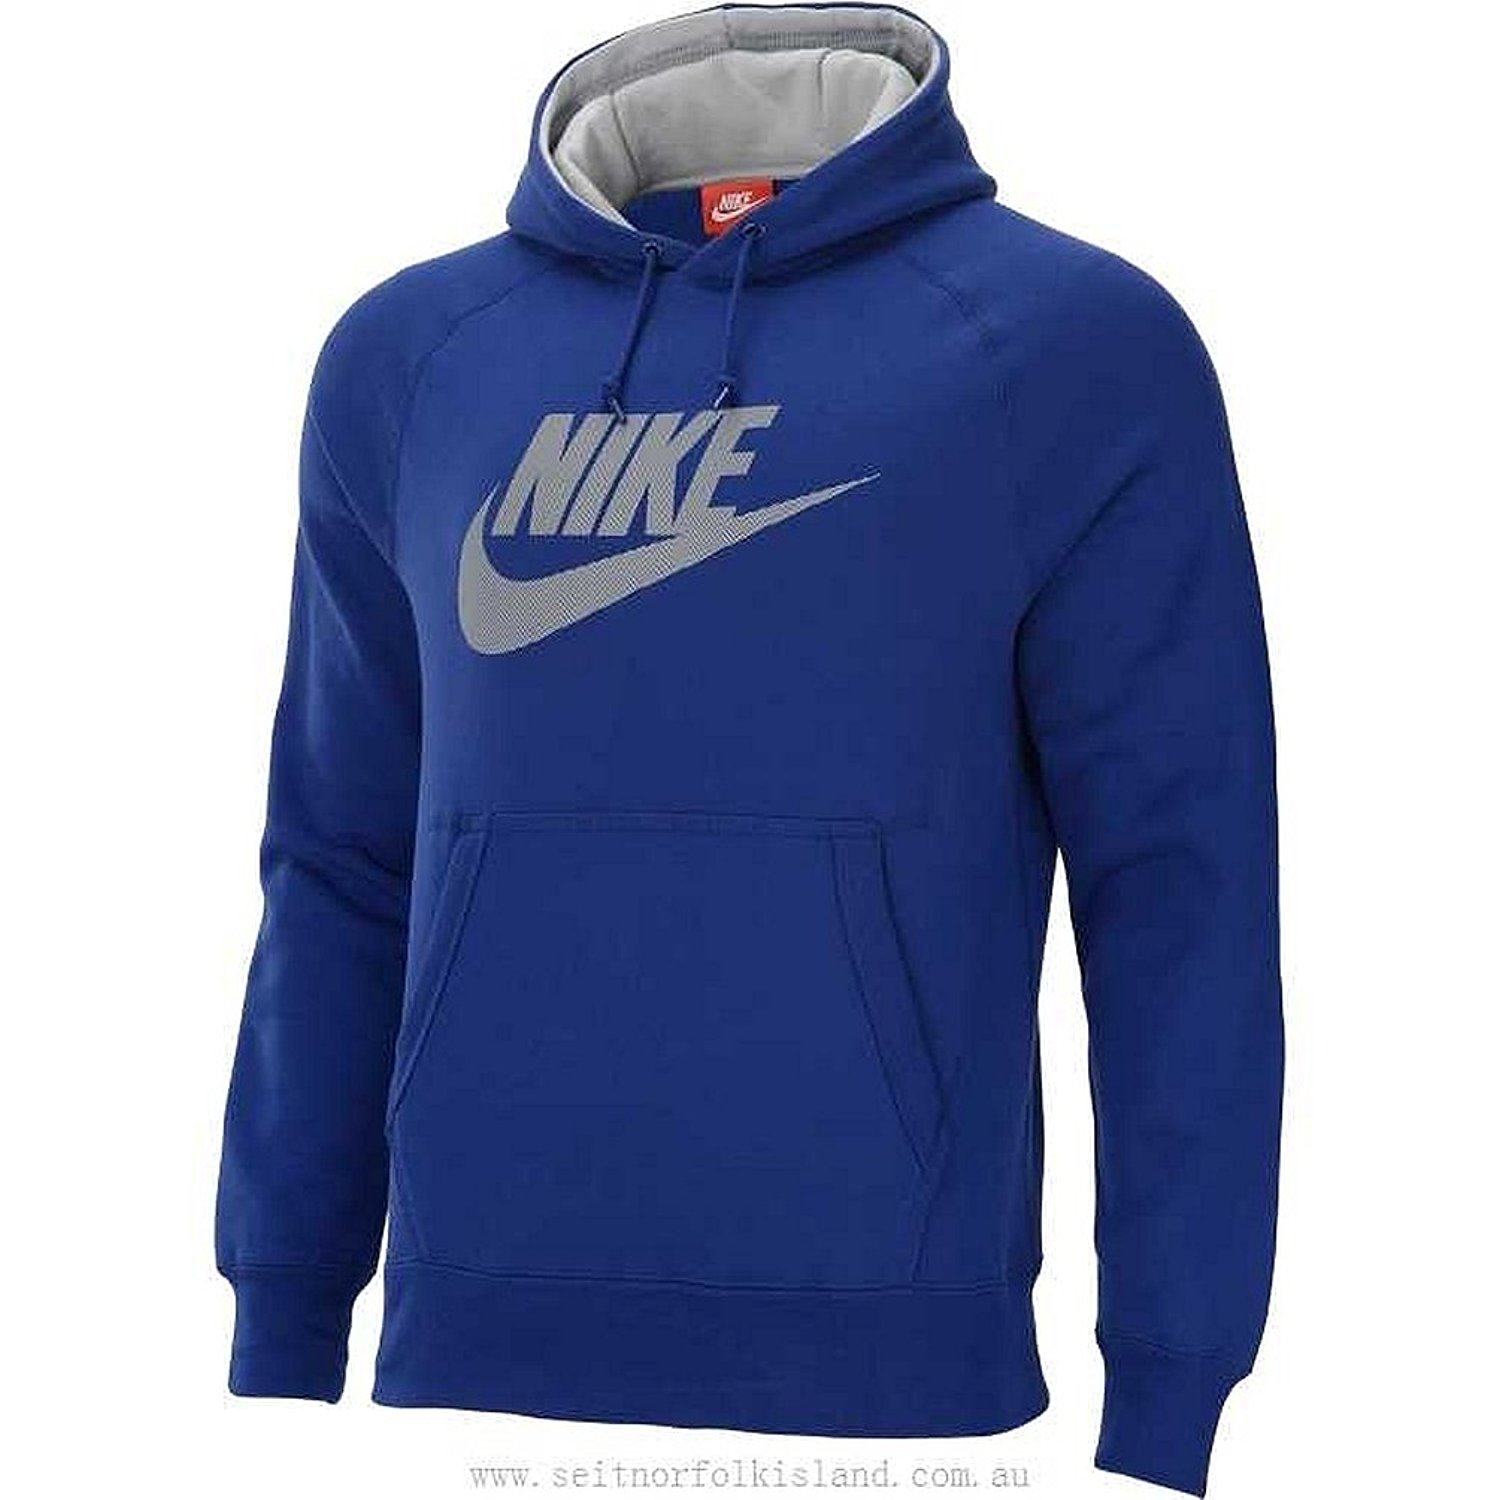 1faa09762449 Get Quotations · Nike Men s AW77 Futura Logo Fleece PO Hoodie Deep Royal  Blue - Medium